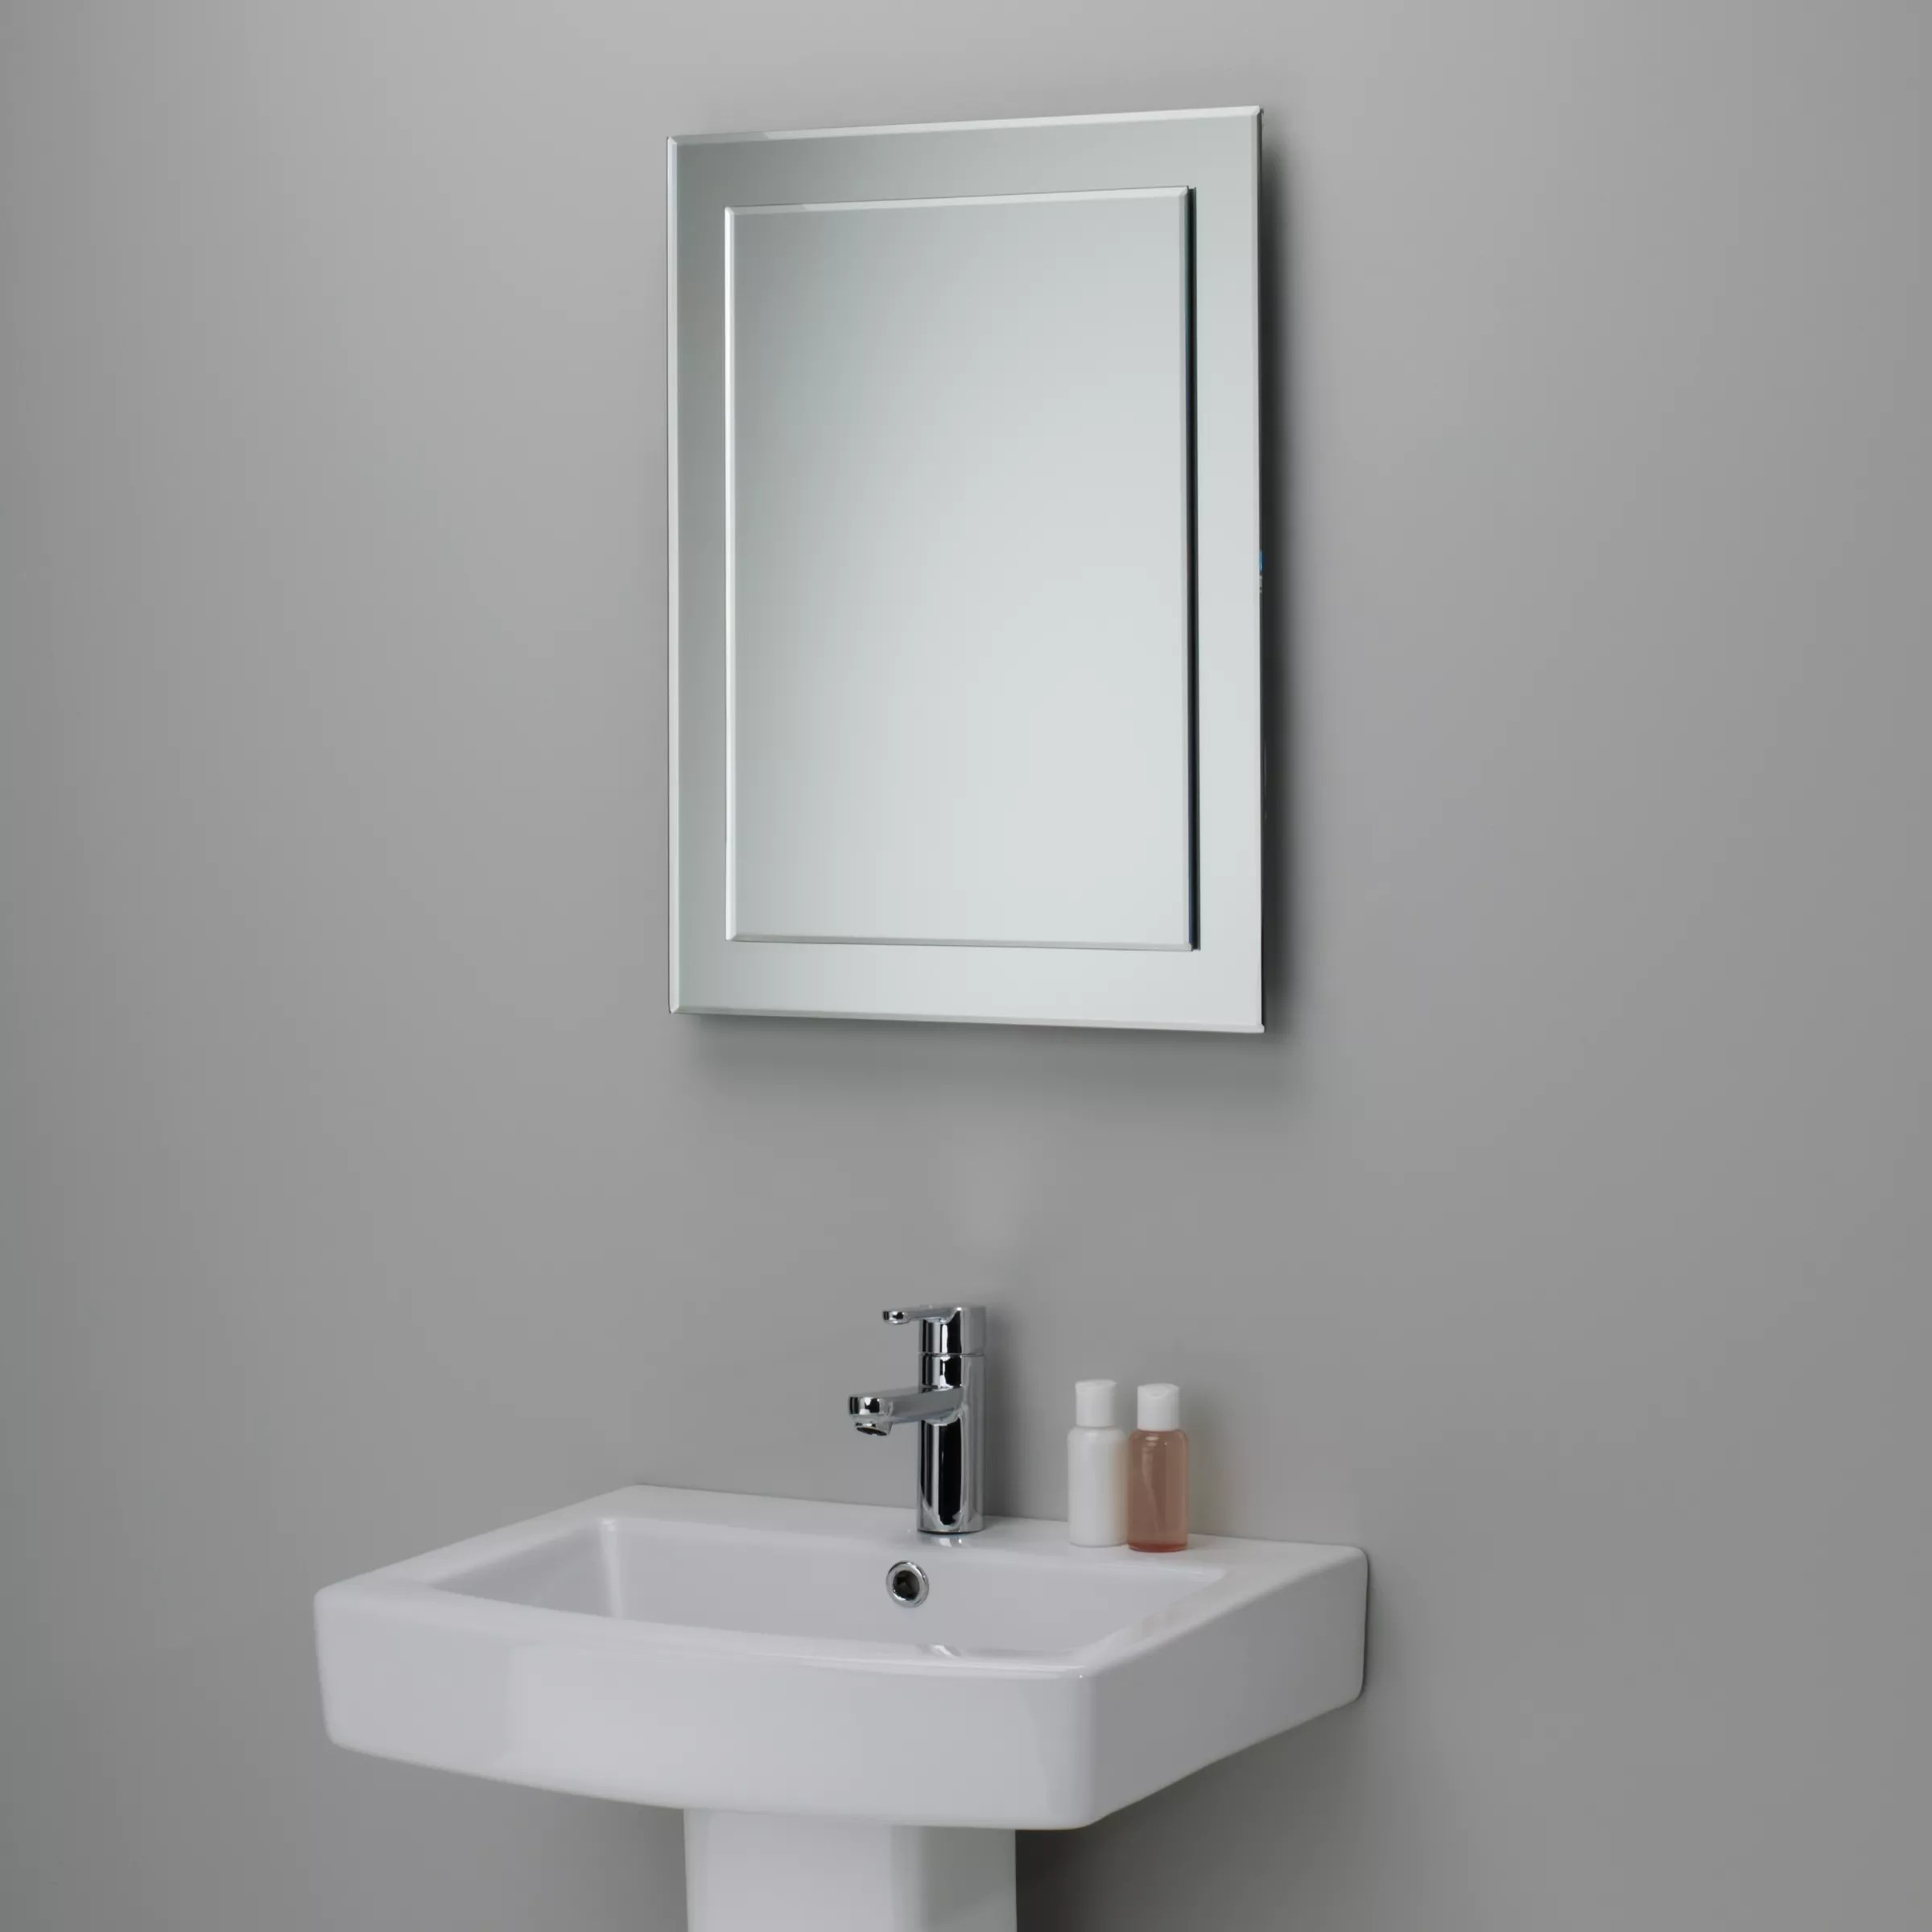 Tv In Bathroom Mirror Price John Lewis And Partners Duo Wall Bathroom Mirror 60 X 45cm